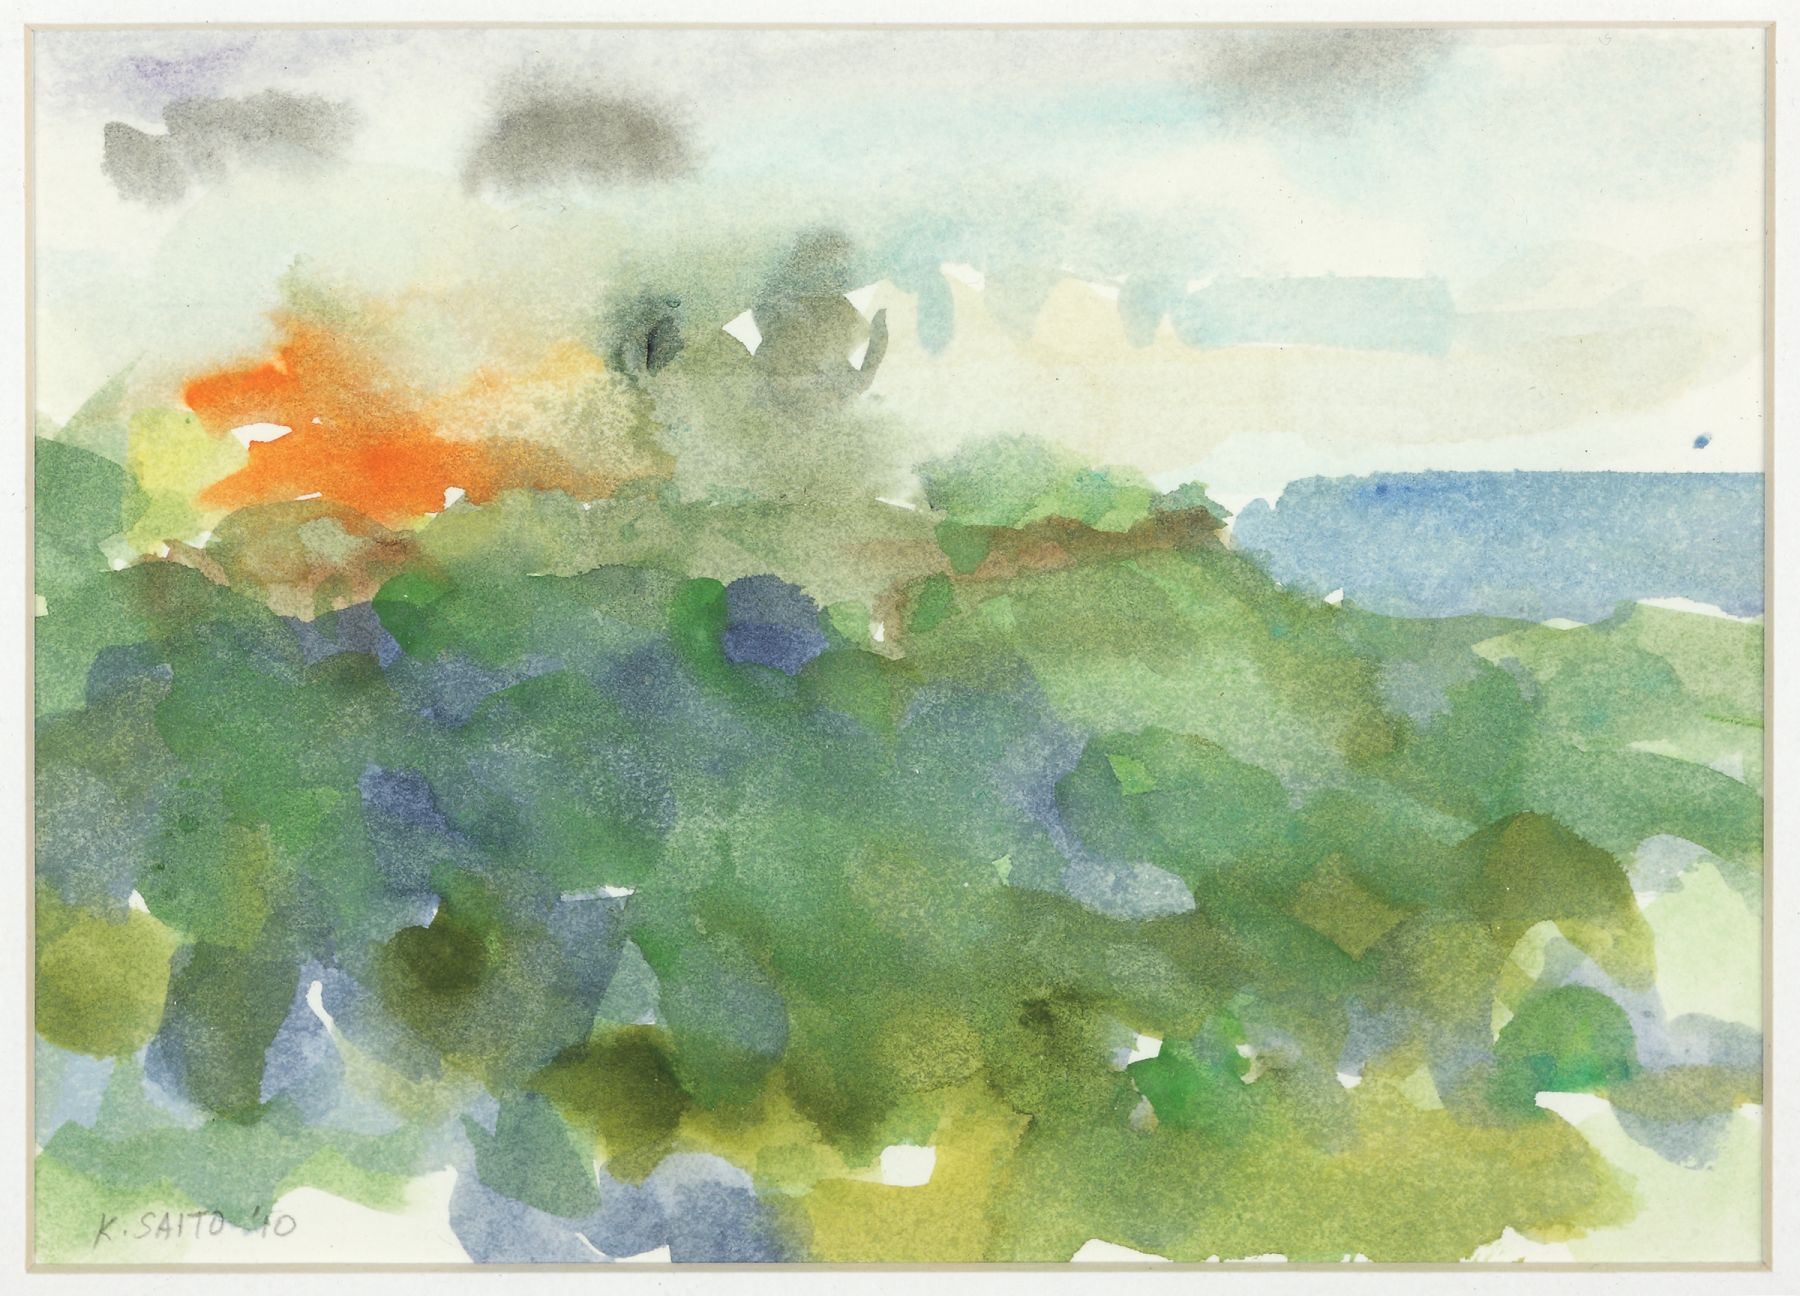 Kikuo Saito, Rincon #73, 2010    Watercolor on paper 5 1/2 x 7 1/4 inches